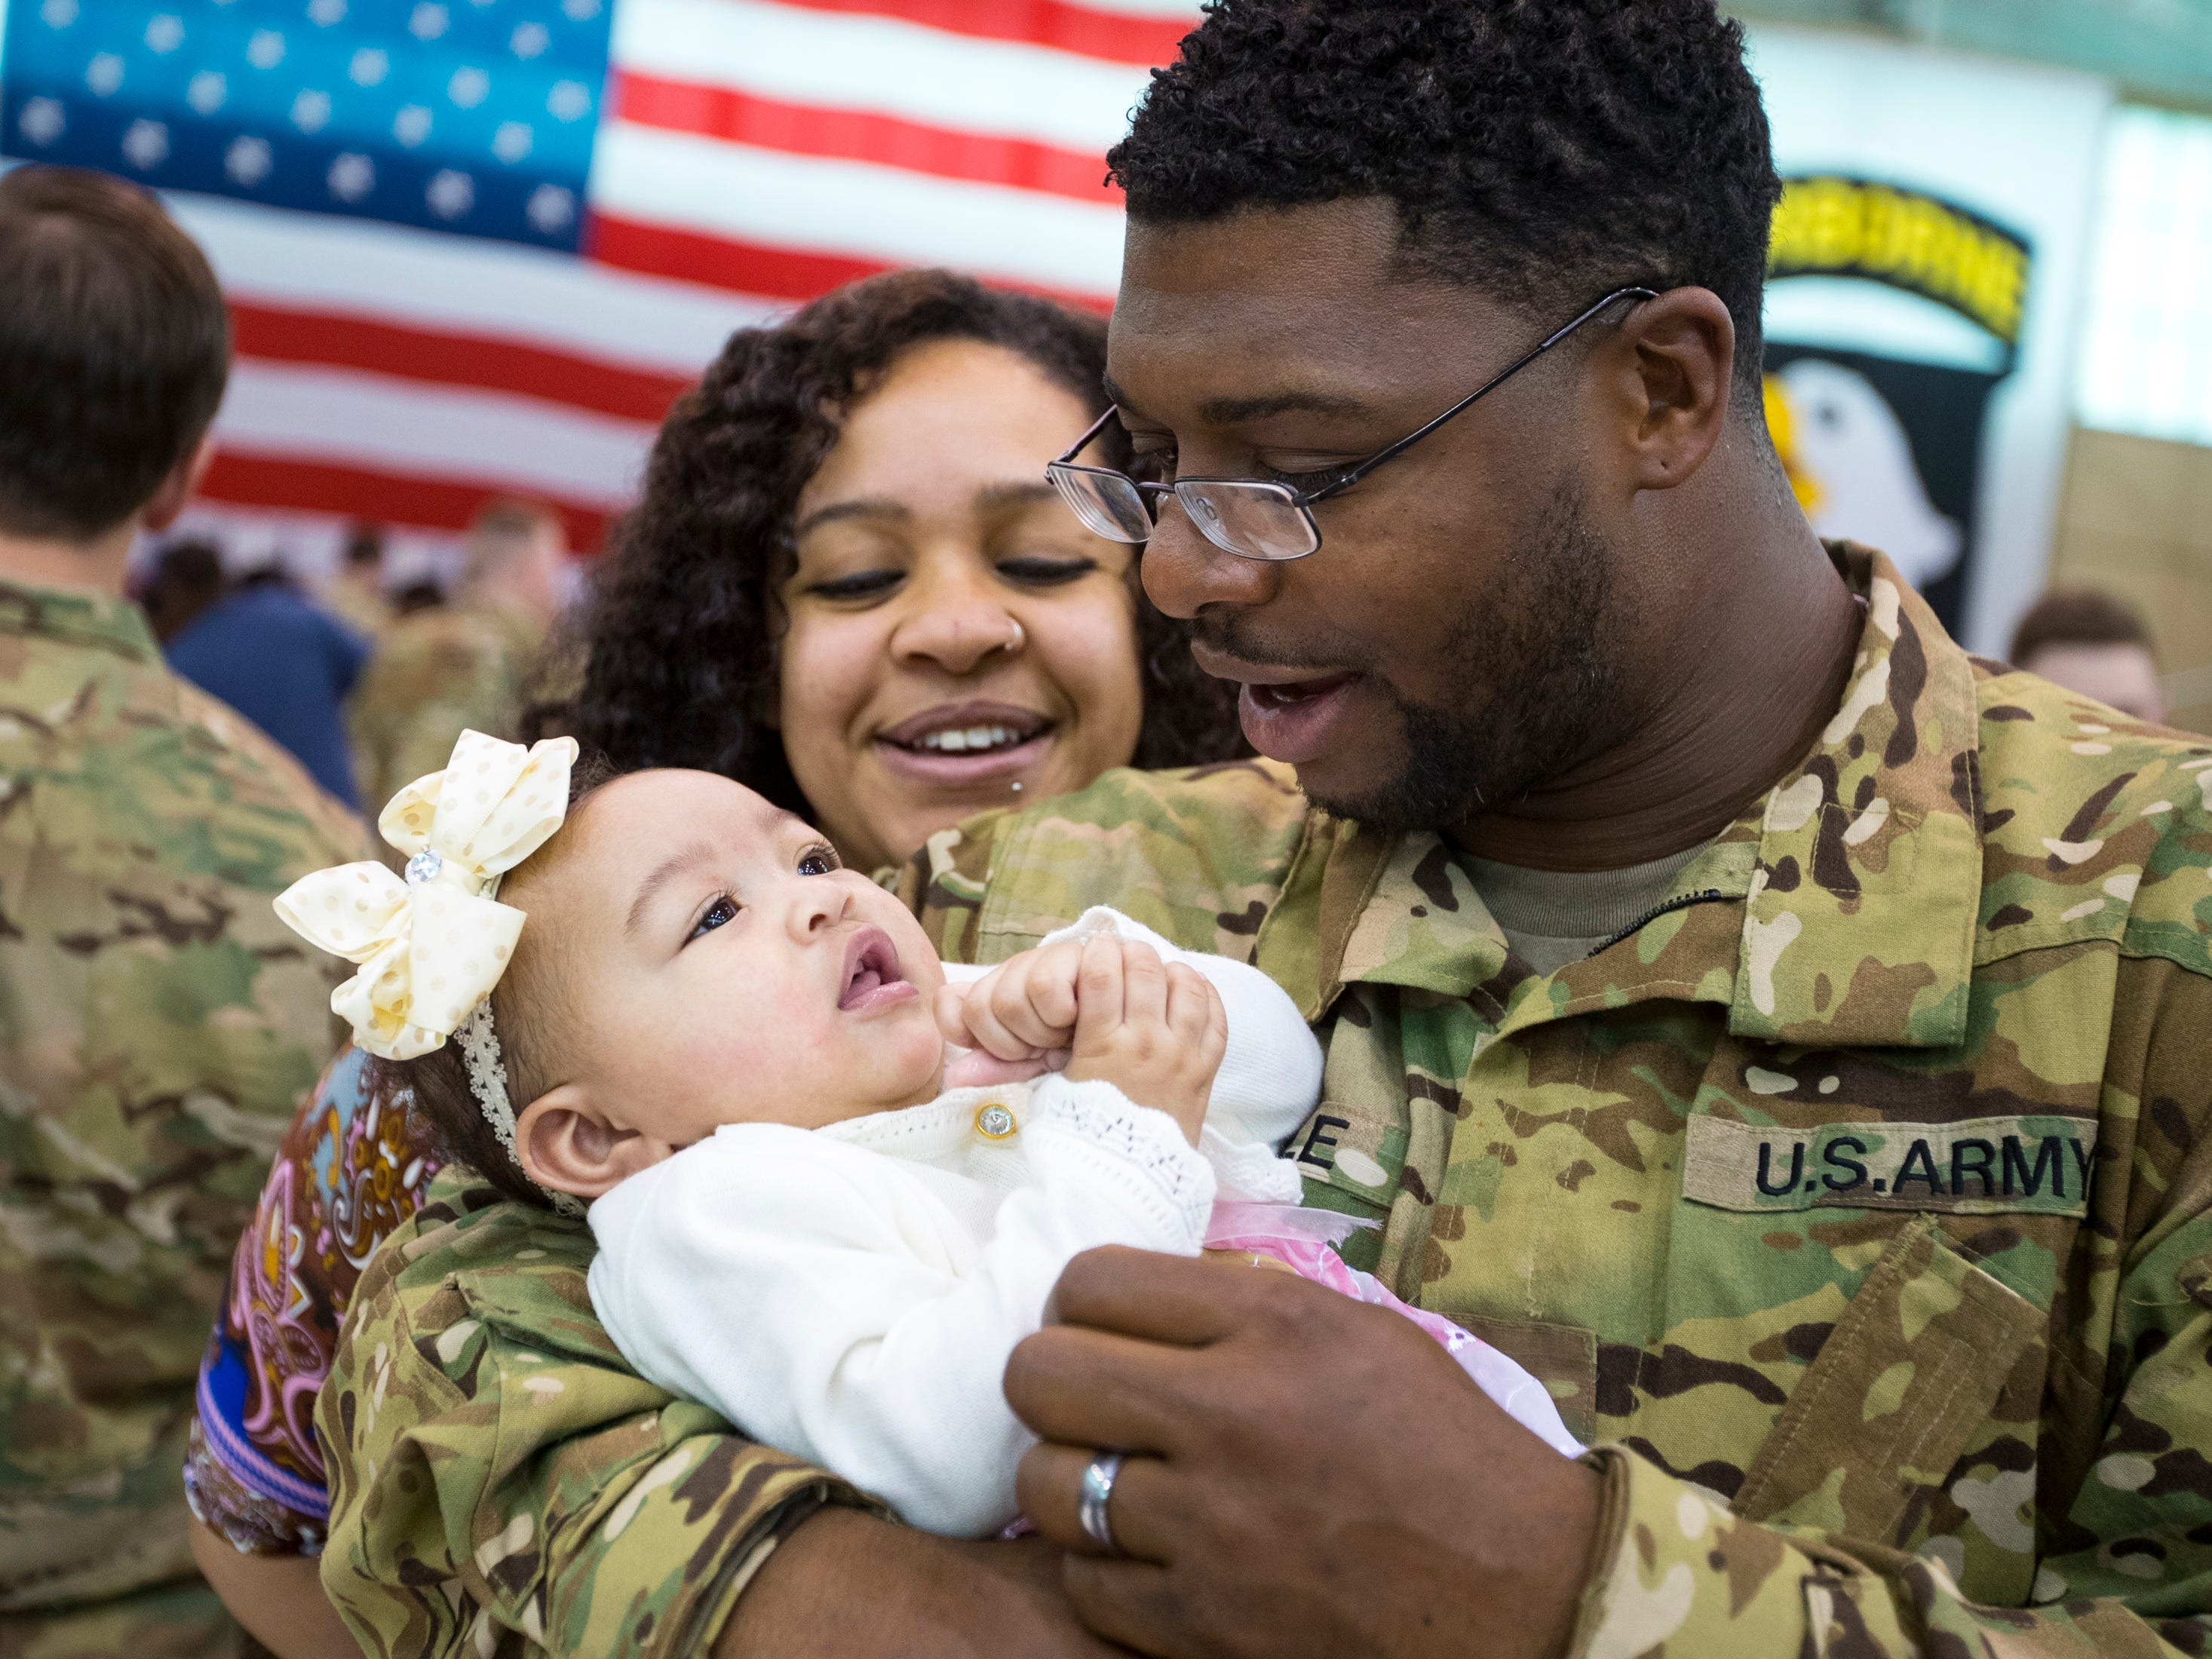 Armani Steele holds his daughter Aria Steele, 6 months, as his wife Jasmine watches during the welcome home ceremony for members of the 101st Combat Aviation Brigade at Fort Campbell in Clarksville on Tuesday, Feb. 5, 2019. The soldiers were returning from a nine-month deployment to Afghanistan.